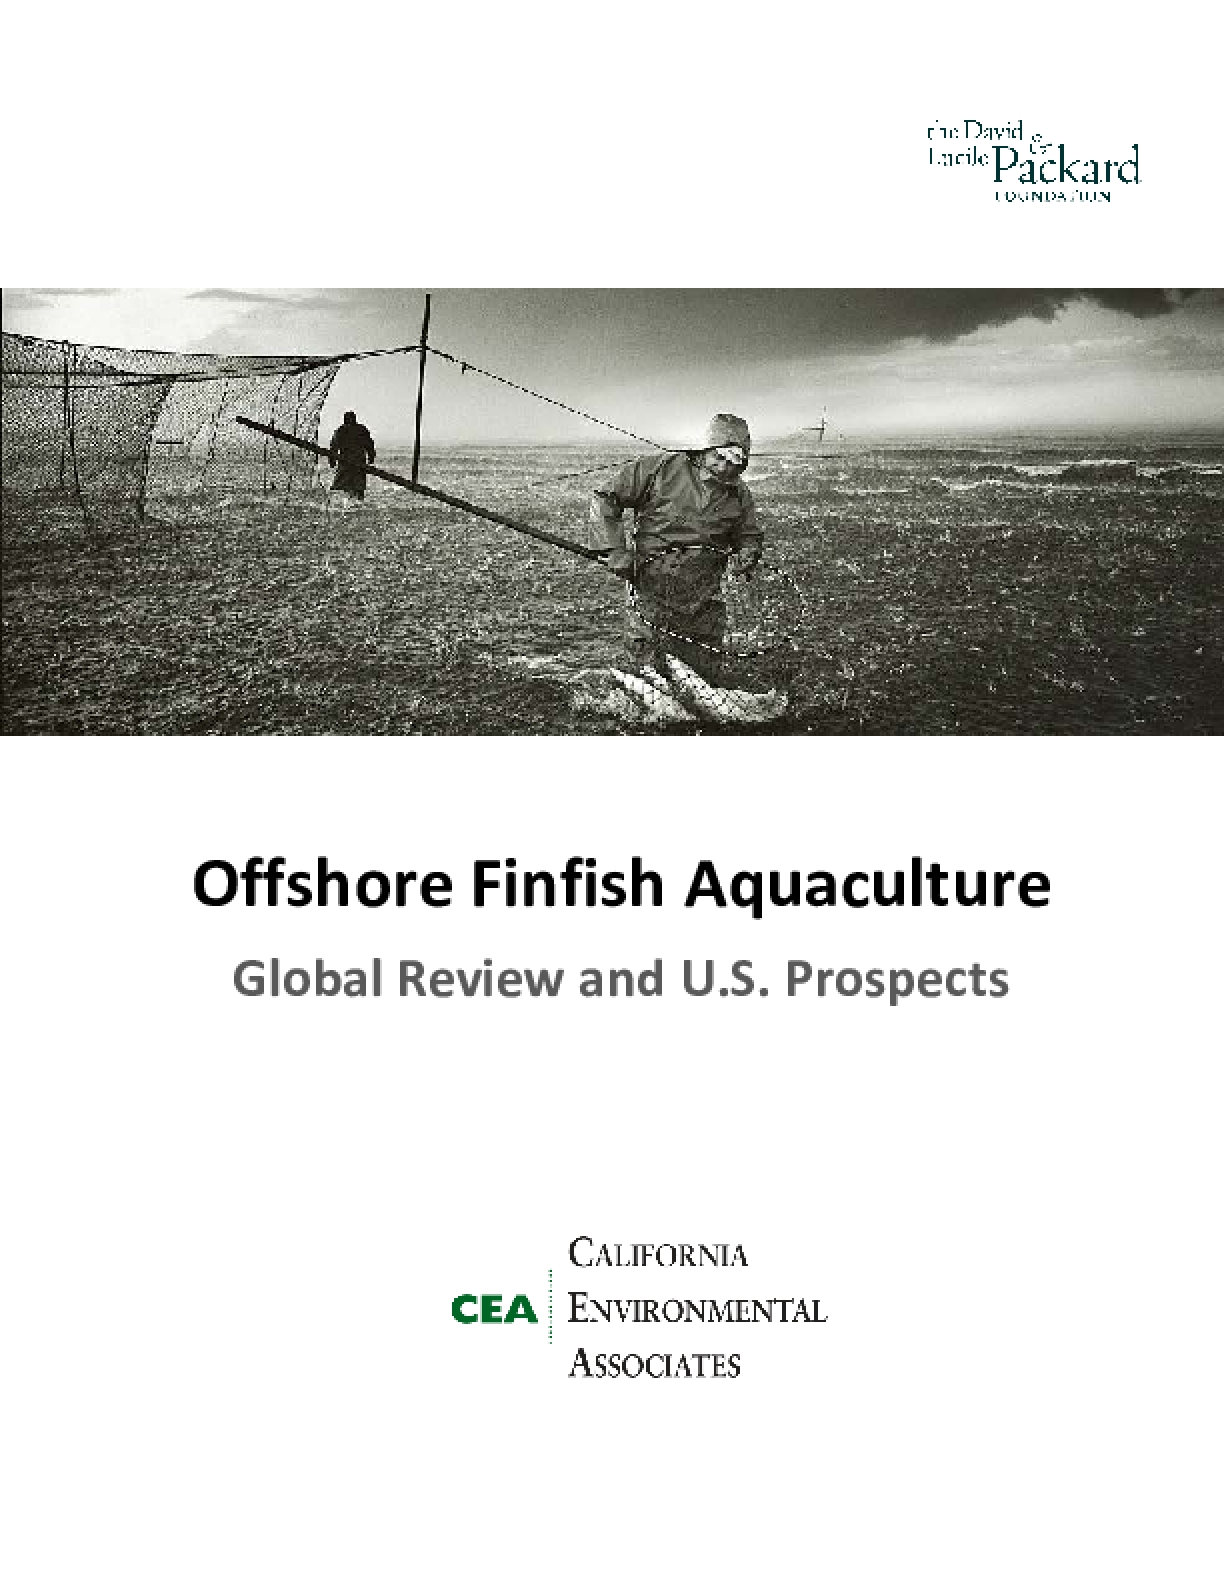 Offshore Finfish Aquaculture: Global Review and U.S. Prospects